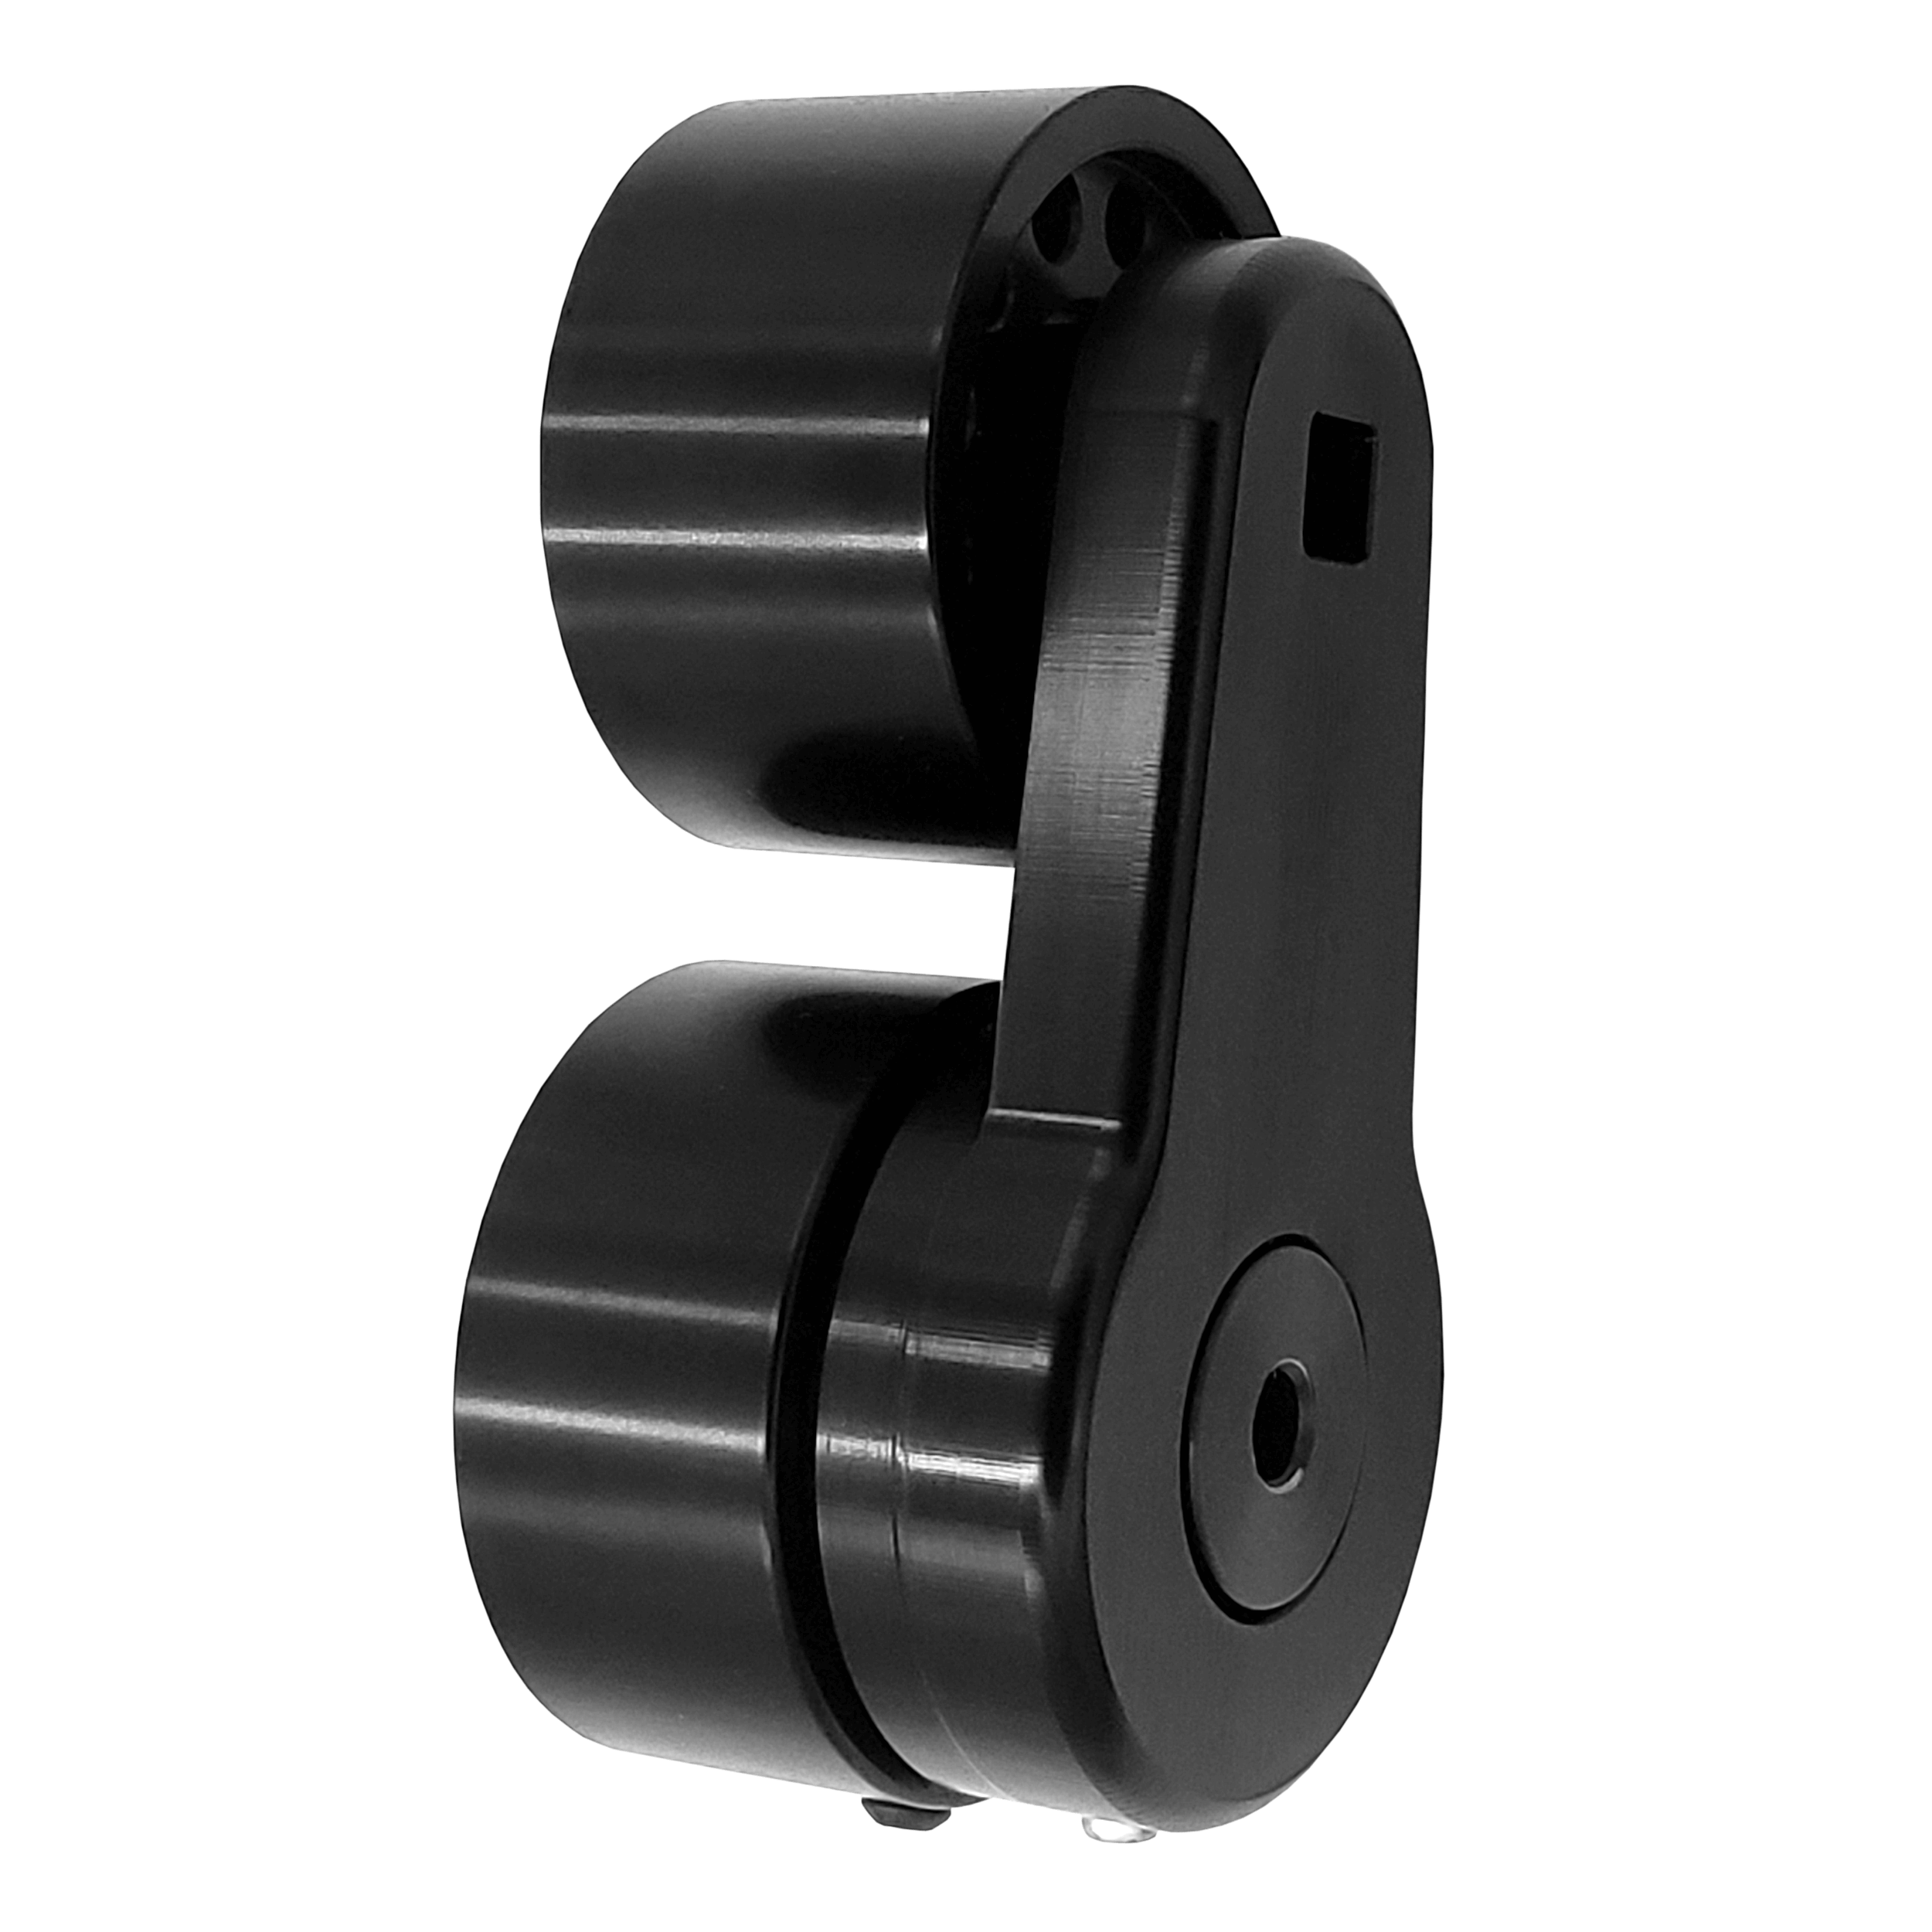 COPO tensioner- 2 9L Whipple Supercharger - NEW DOUBLE BEARING PULLEY